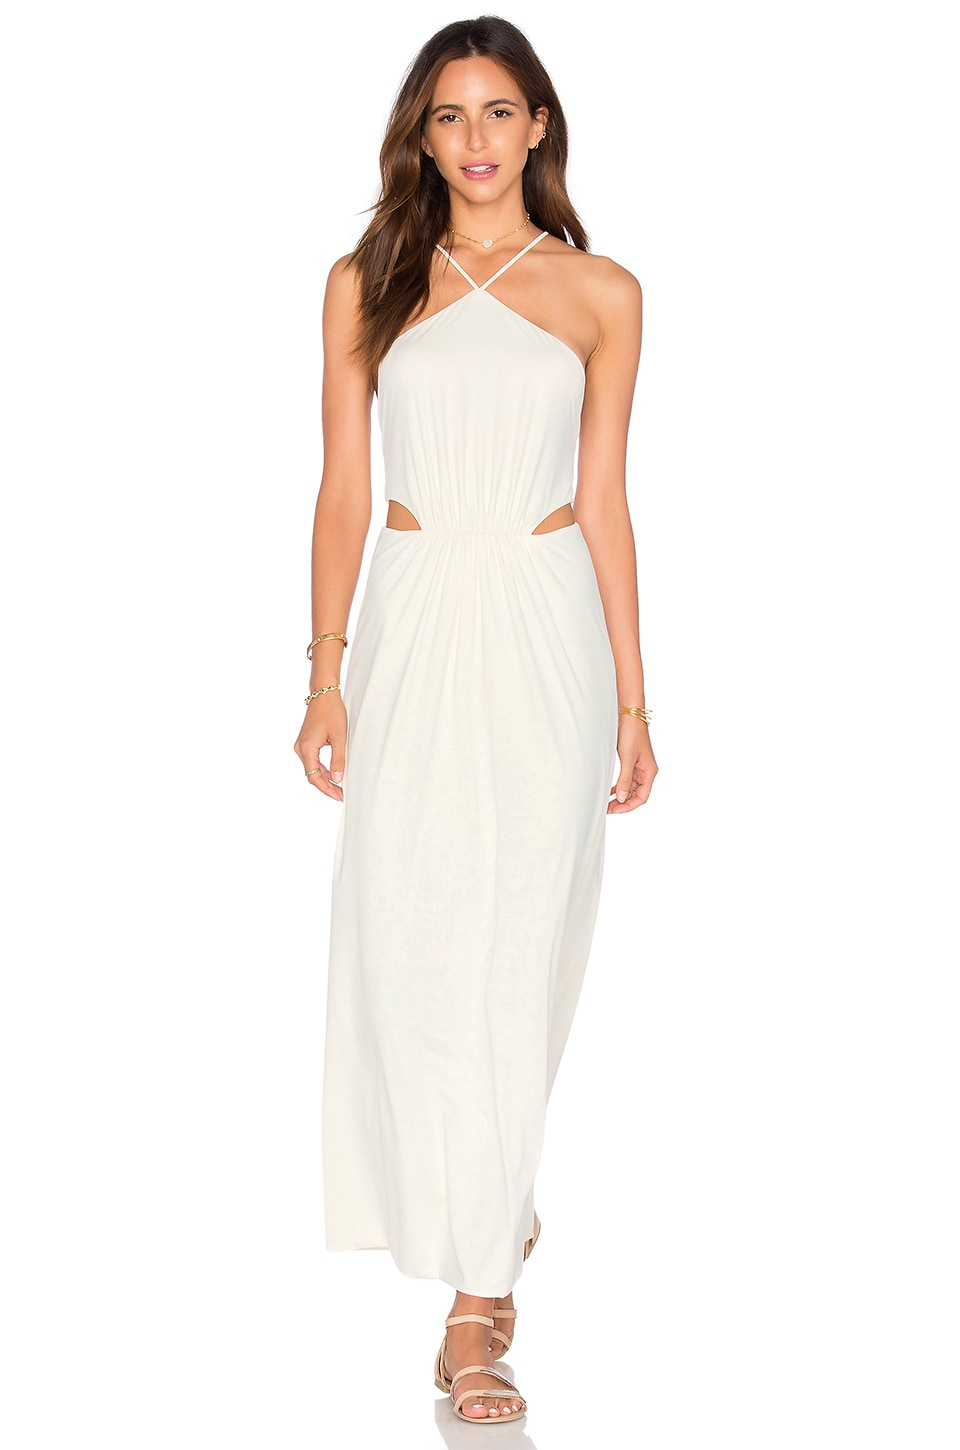 CLUBE BOSSA Middleton Maxi Dress in Perola